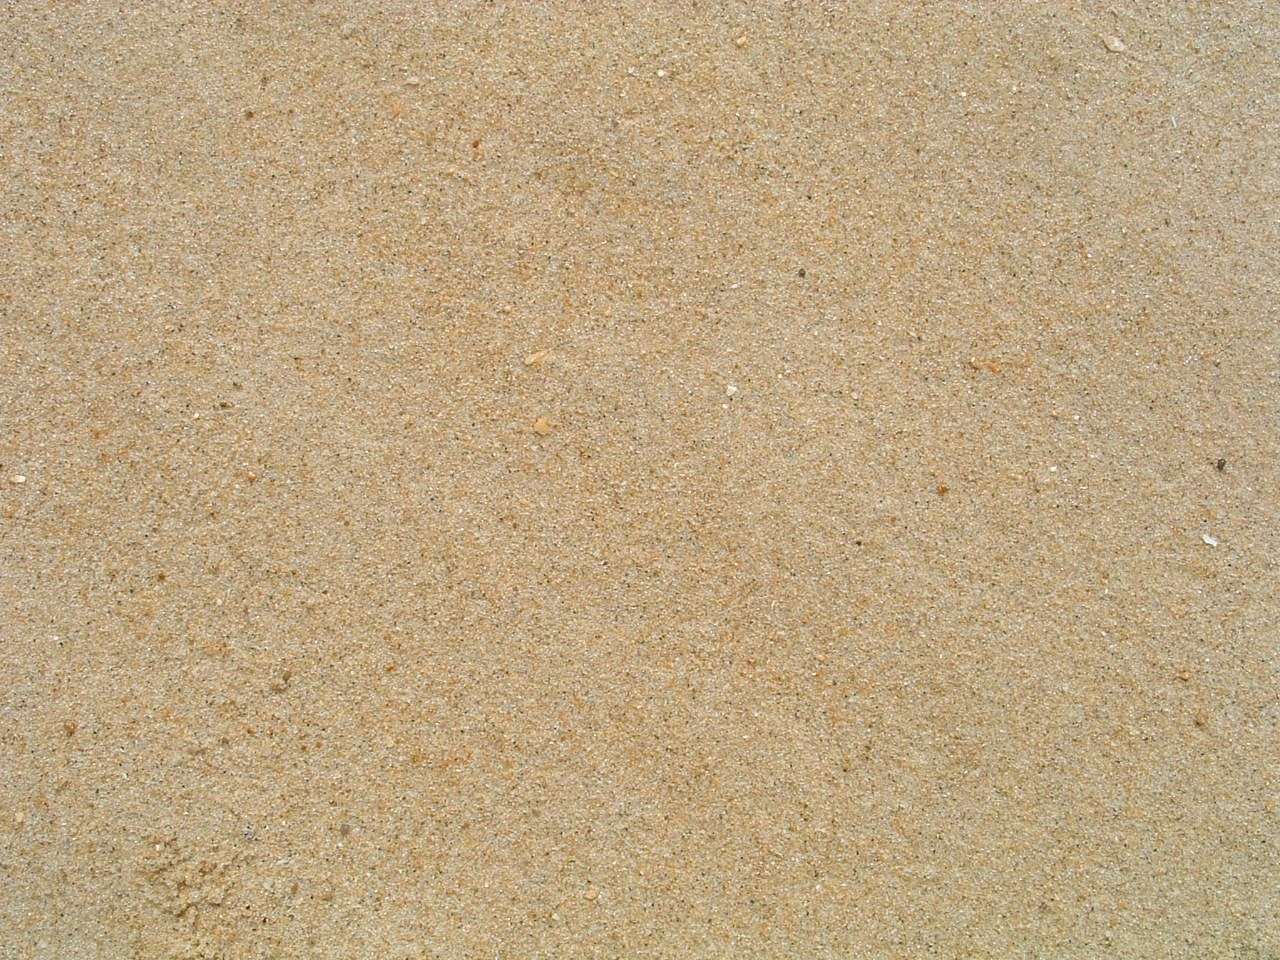 sand texture sand texture sand beach background